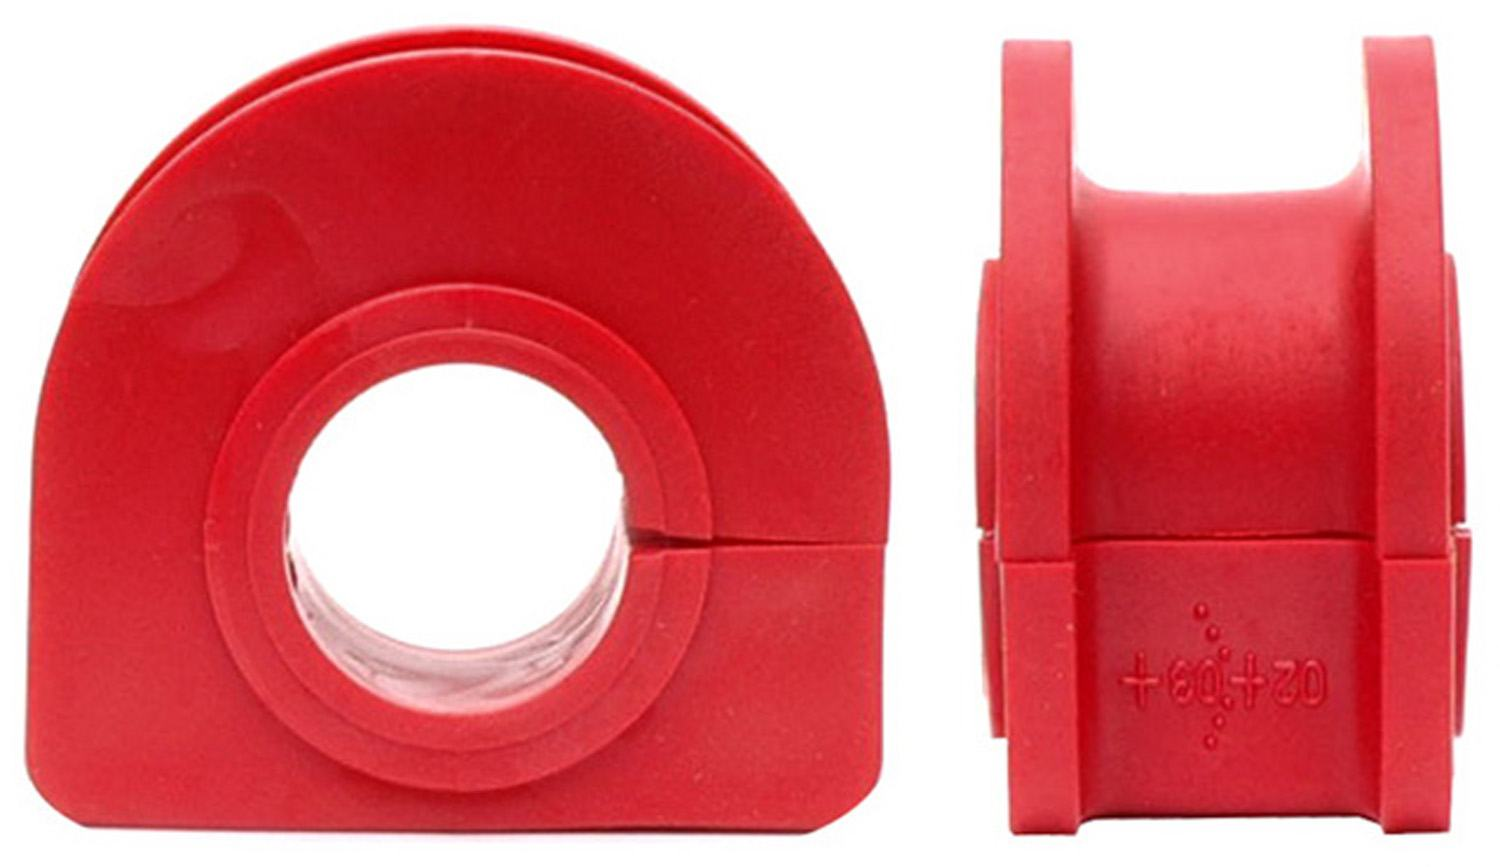 ACDELCO SILVER/ADVANTAGE - Suspension Stabilizer Bar Bushing Kit (Front To Control Arm) - DCD 46G0631A